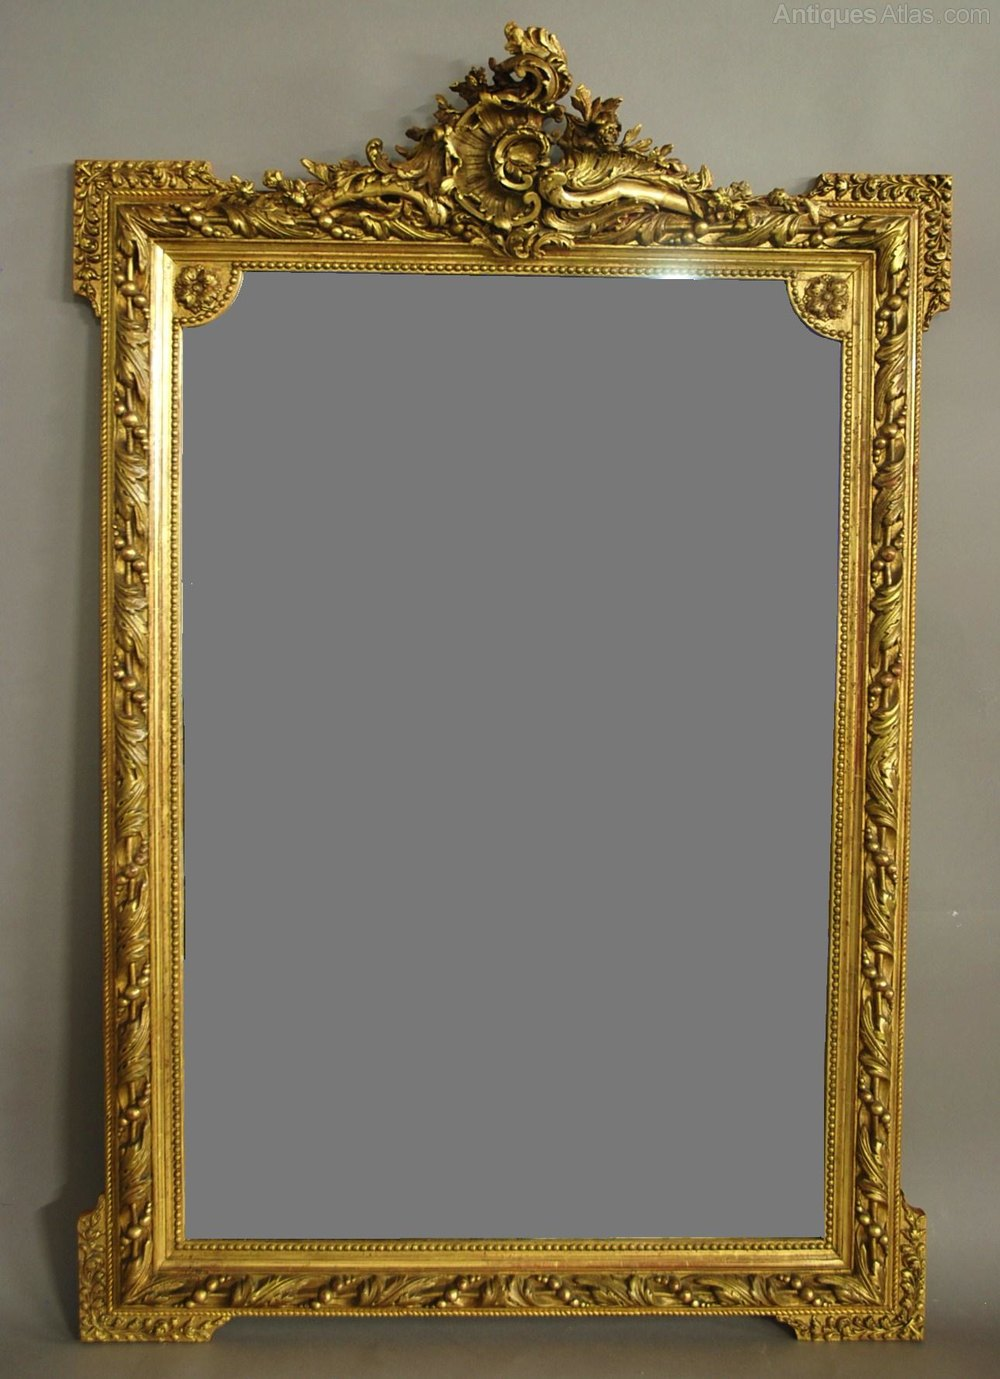 Antiques atlas large 19th century ornate french gilt mirror for What is a gilt mirror